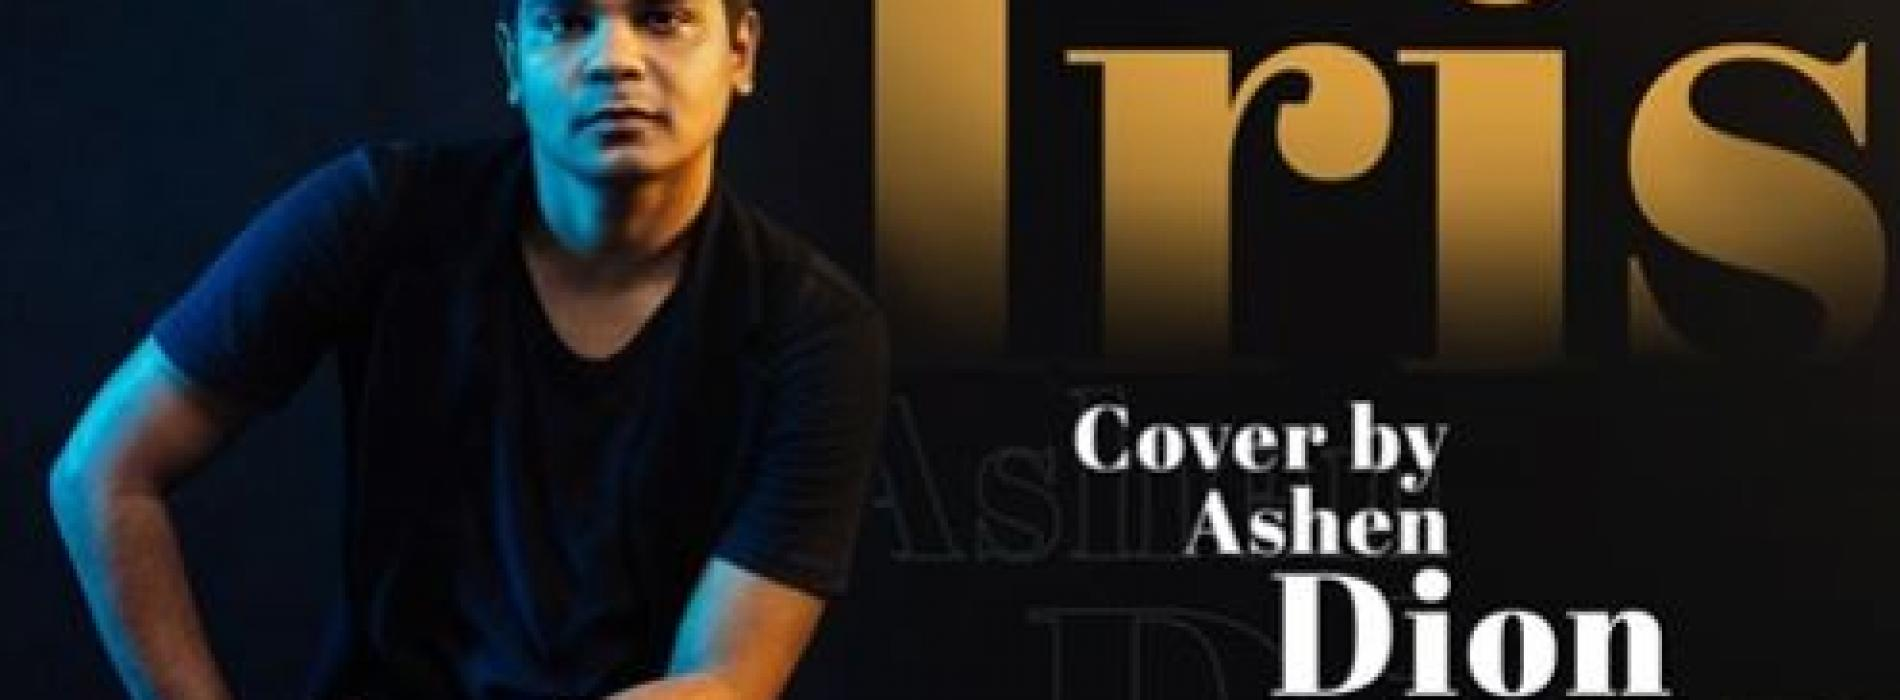 New Music : Iris by Goo Goo Dolls   Cover by Ashen Dion